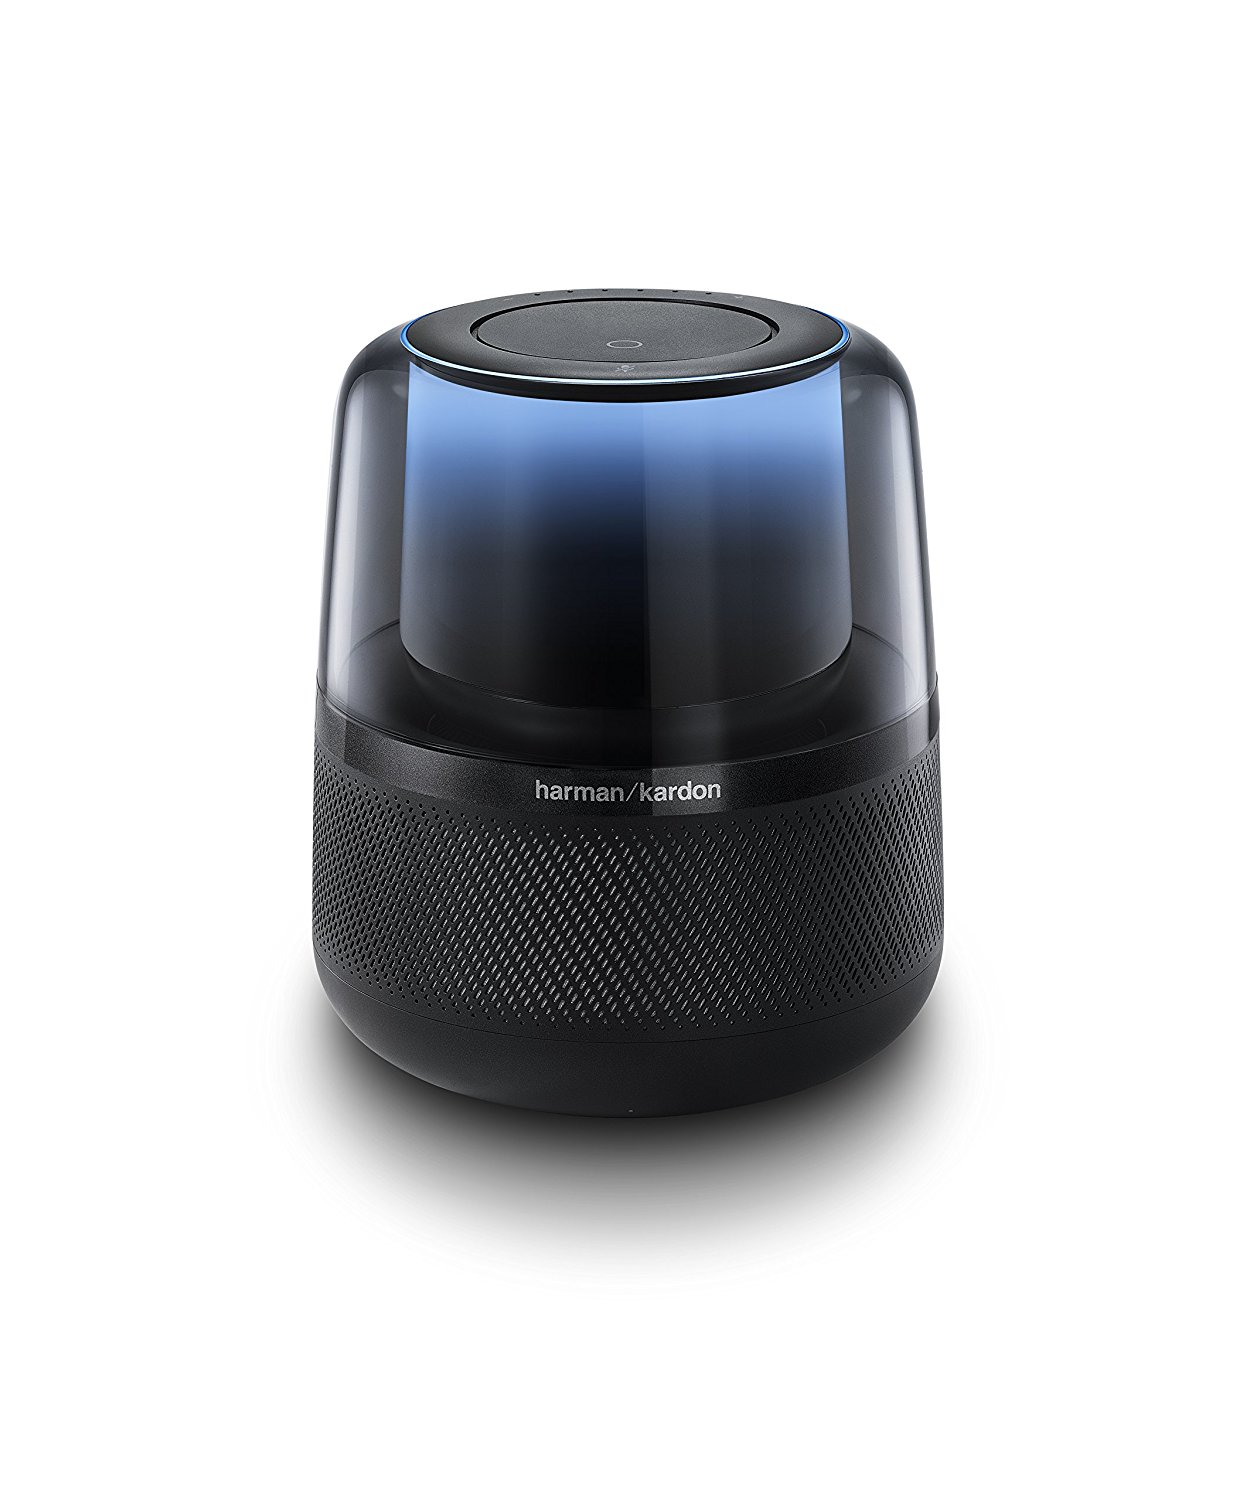 Harman Kardon Allure Voice-Activated Home Speaker with Alexa, Black by Harman Kardon